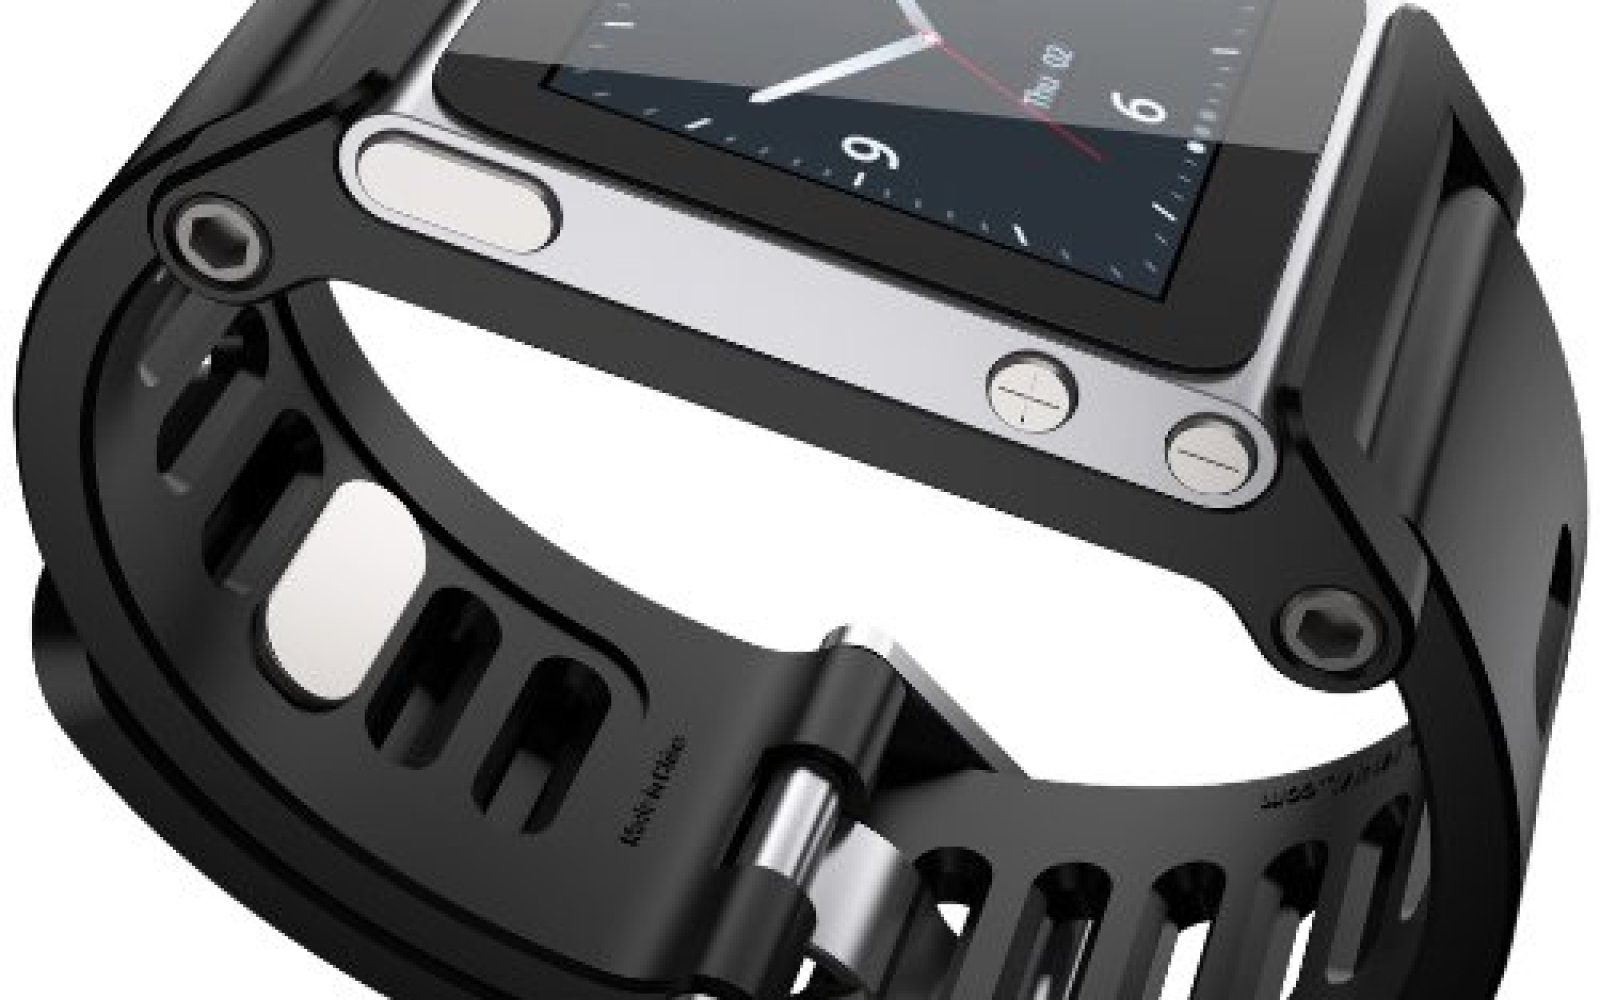 LunaTik TikTok Watch Wrist Strap for iPod Nano 6G in 5 colors: Starting at $5 shipped